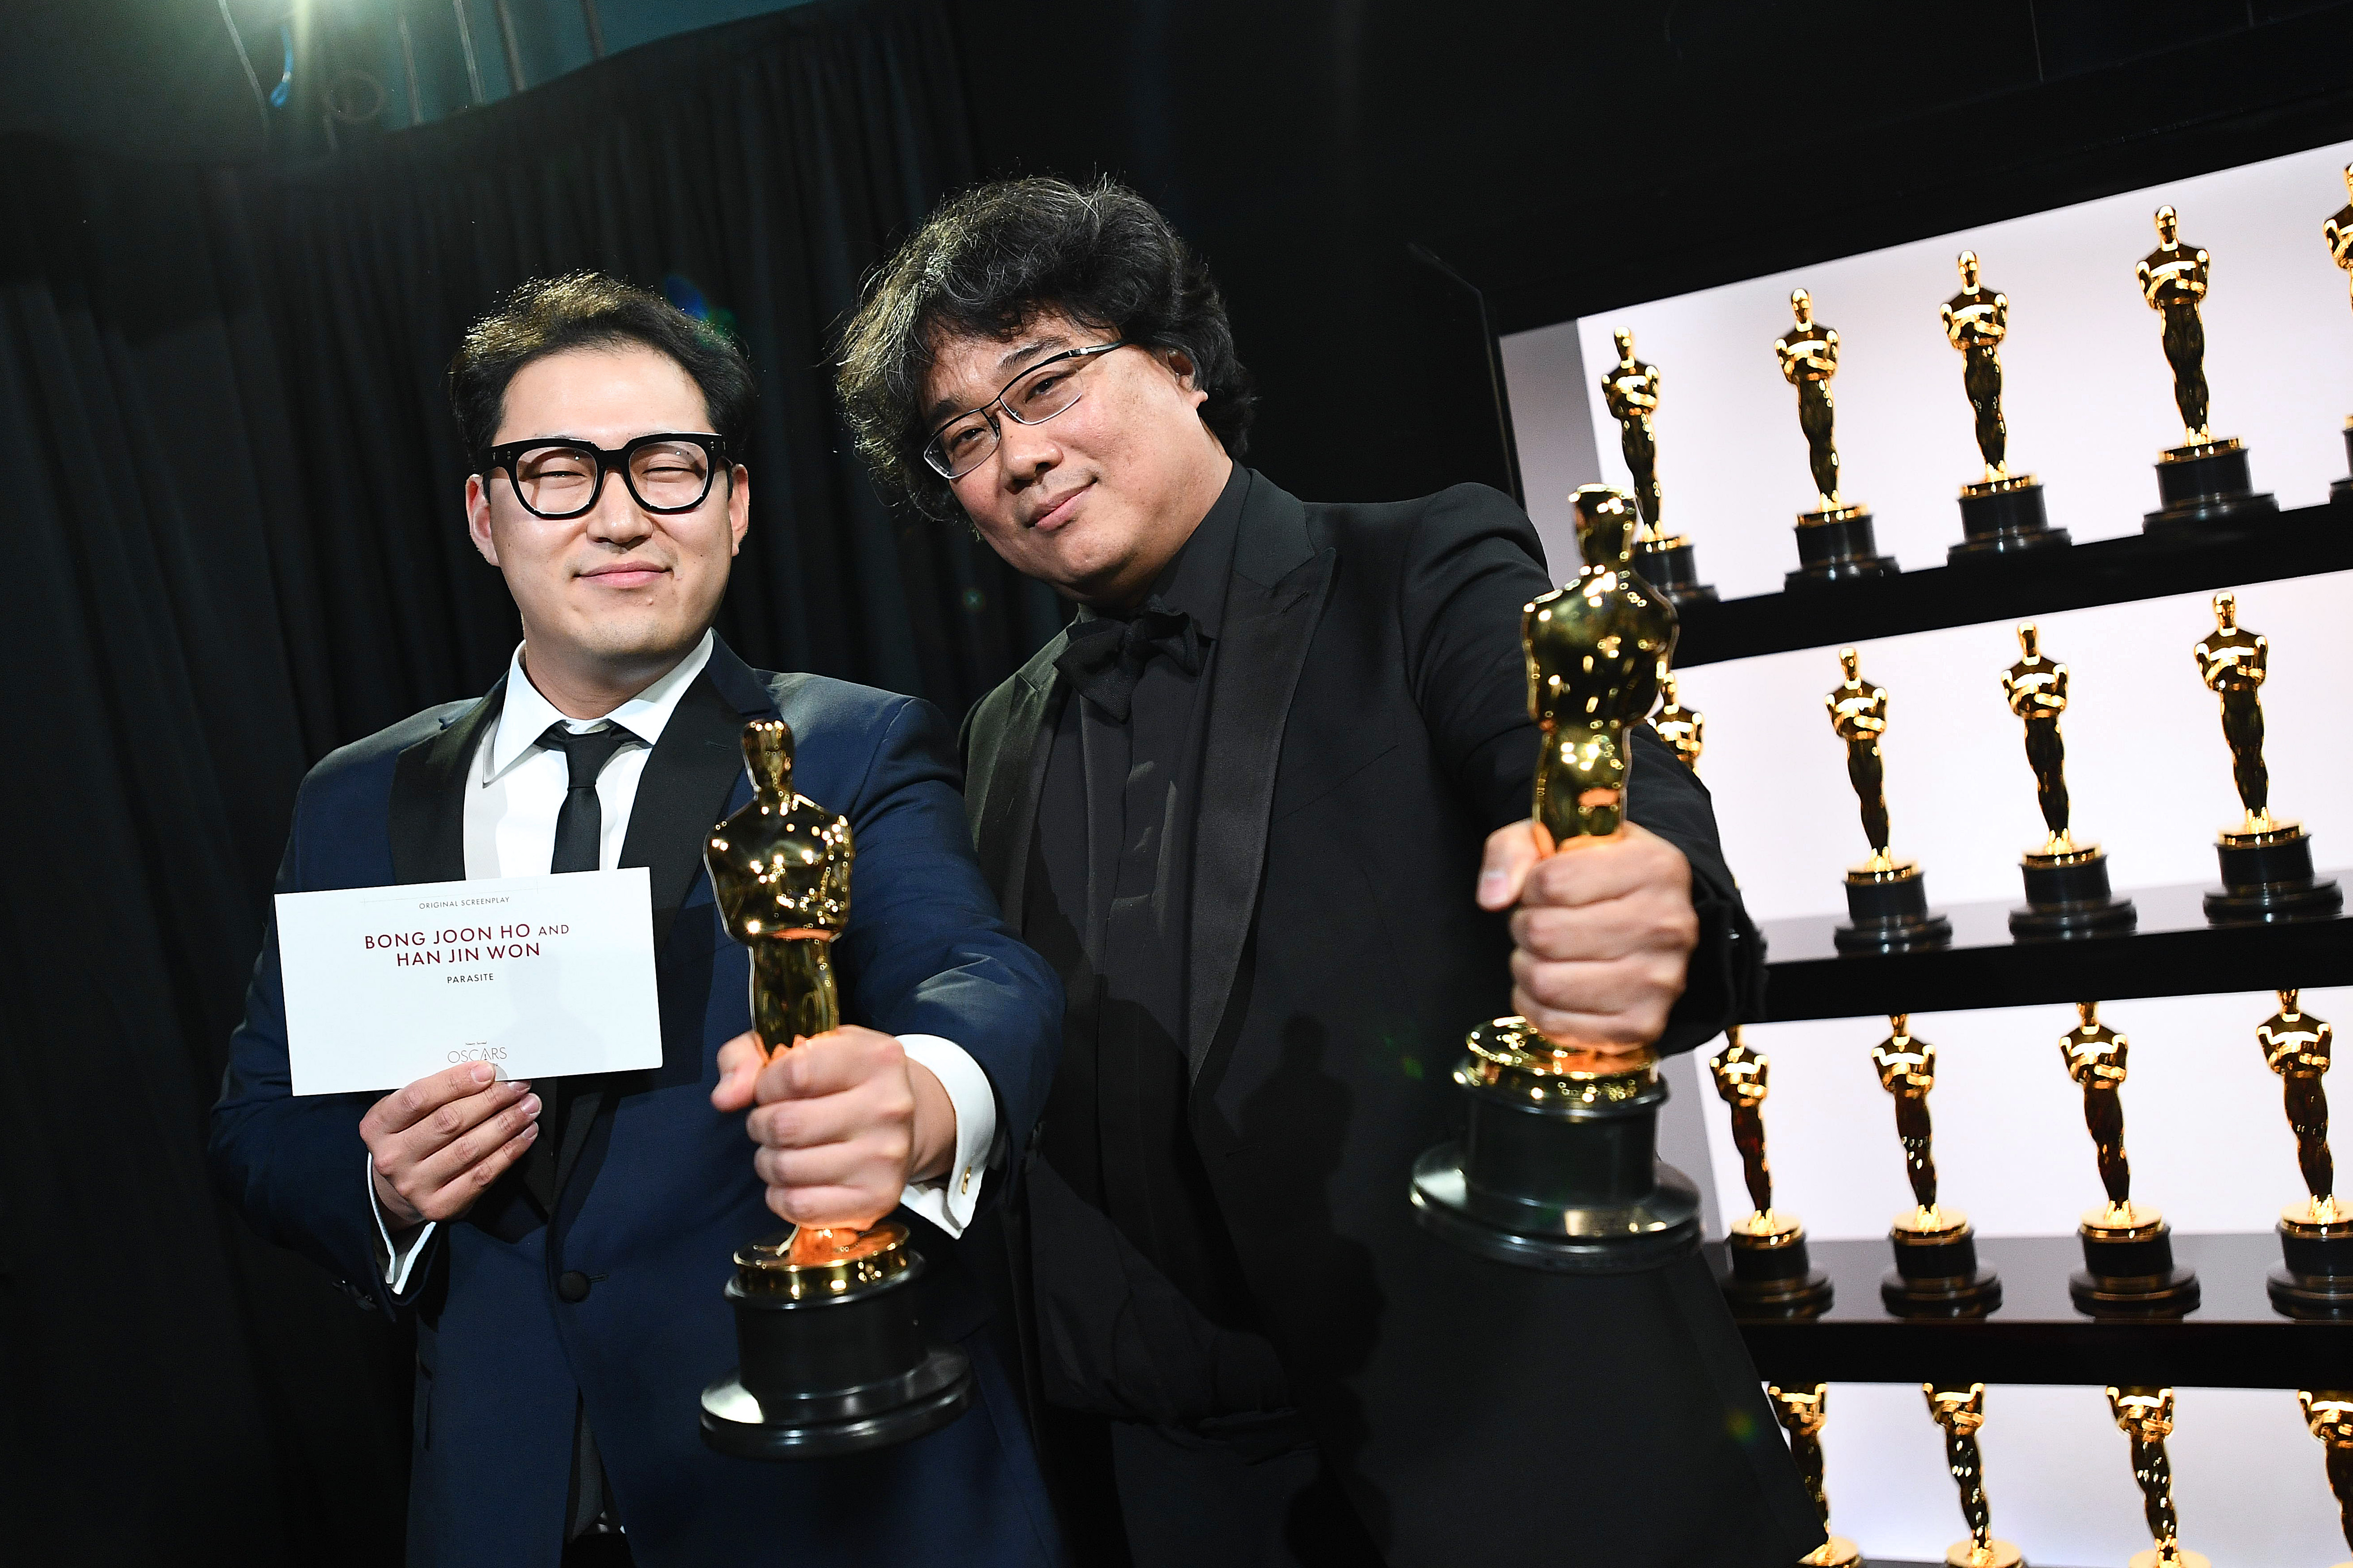 Best Original Screenplay award winners Han Jin Won and Bong Joon Ho pose backstage during the 92nd Annual Academy Awards at the Dolby Theatre on February 09, 2020 in Hollywood, California.